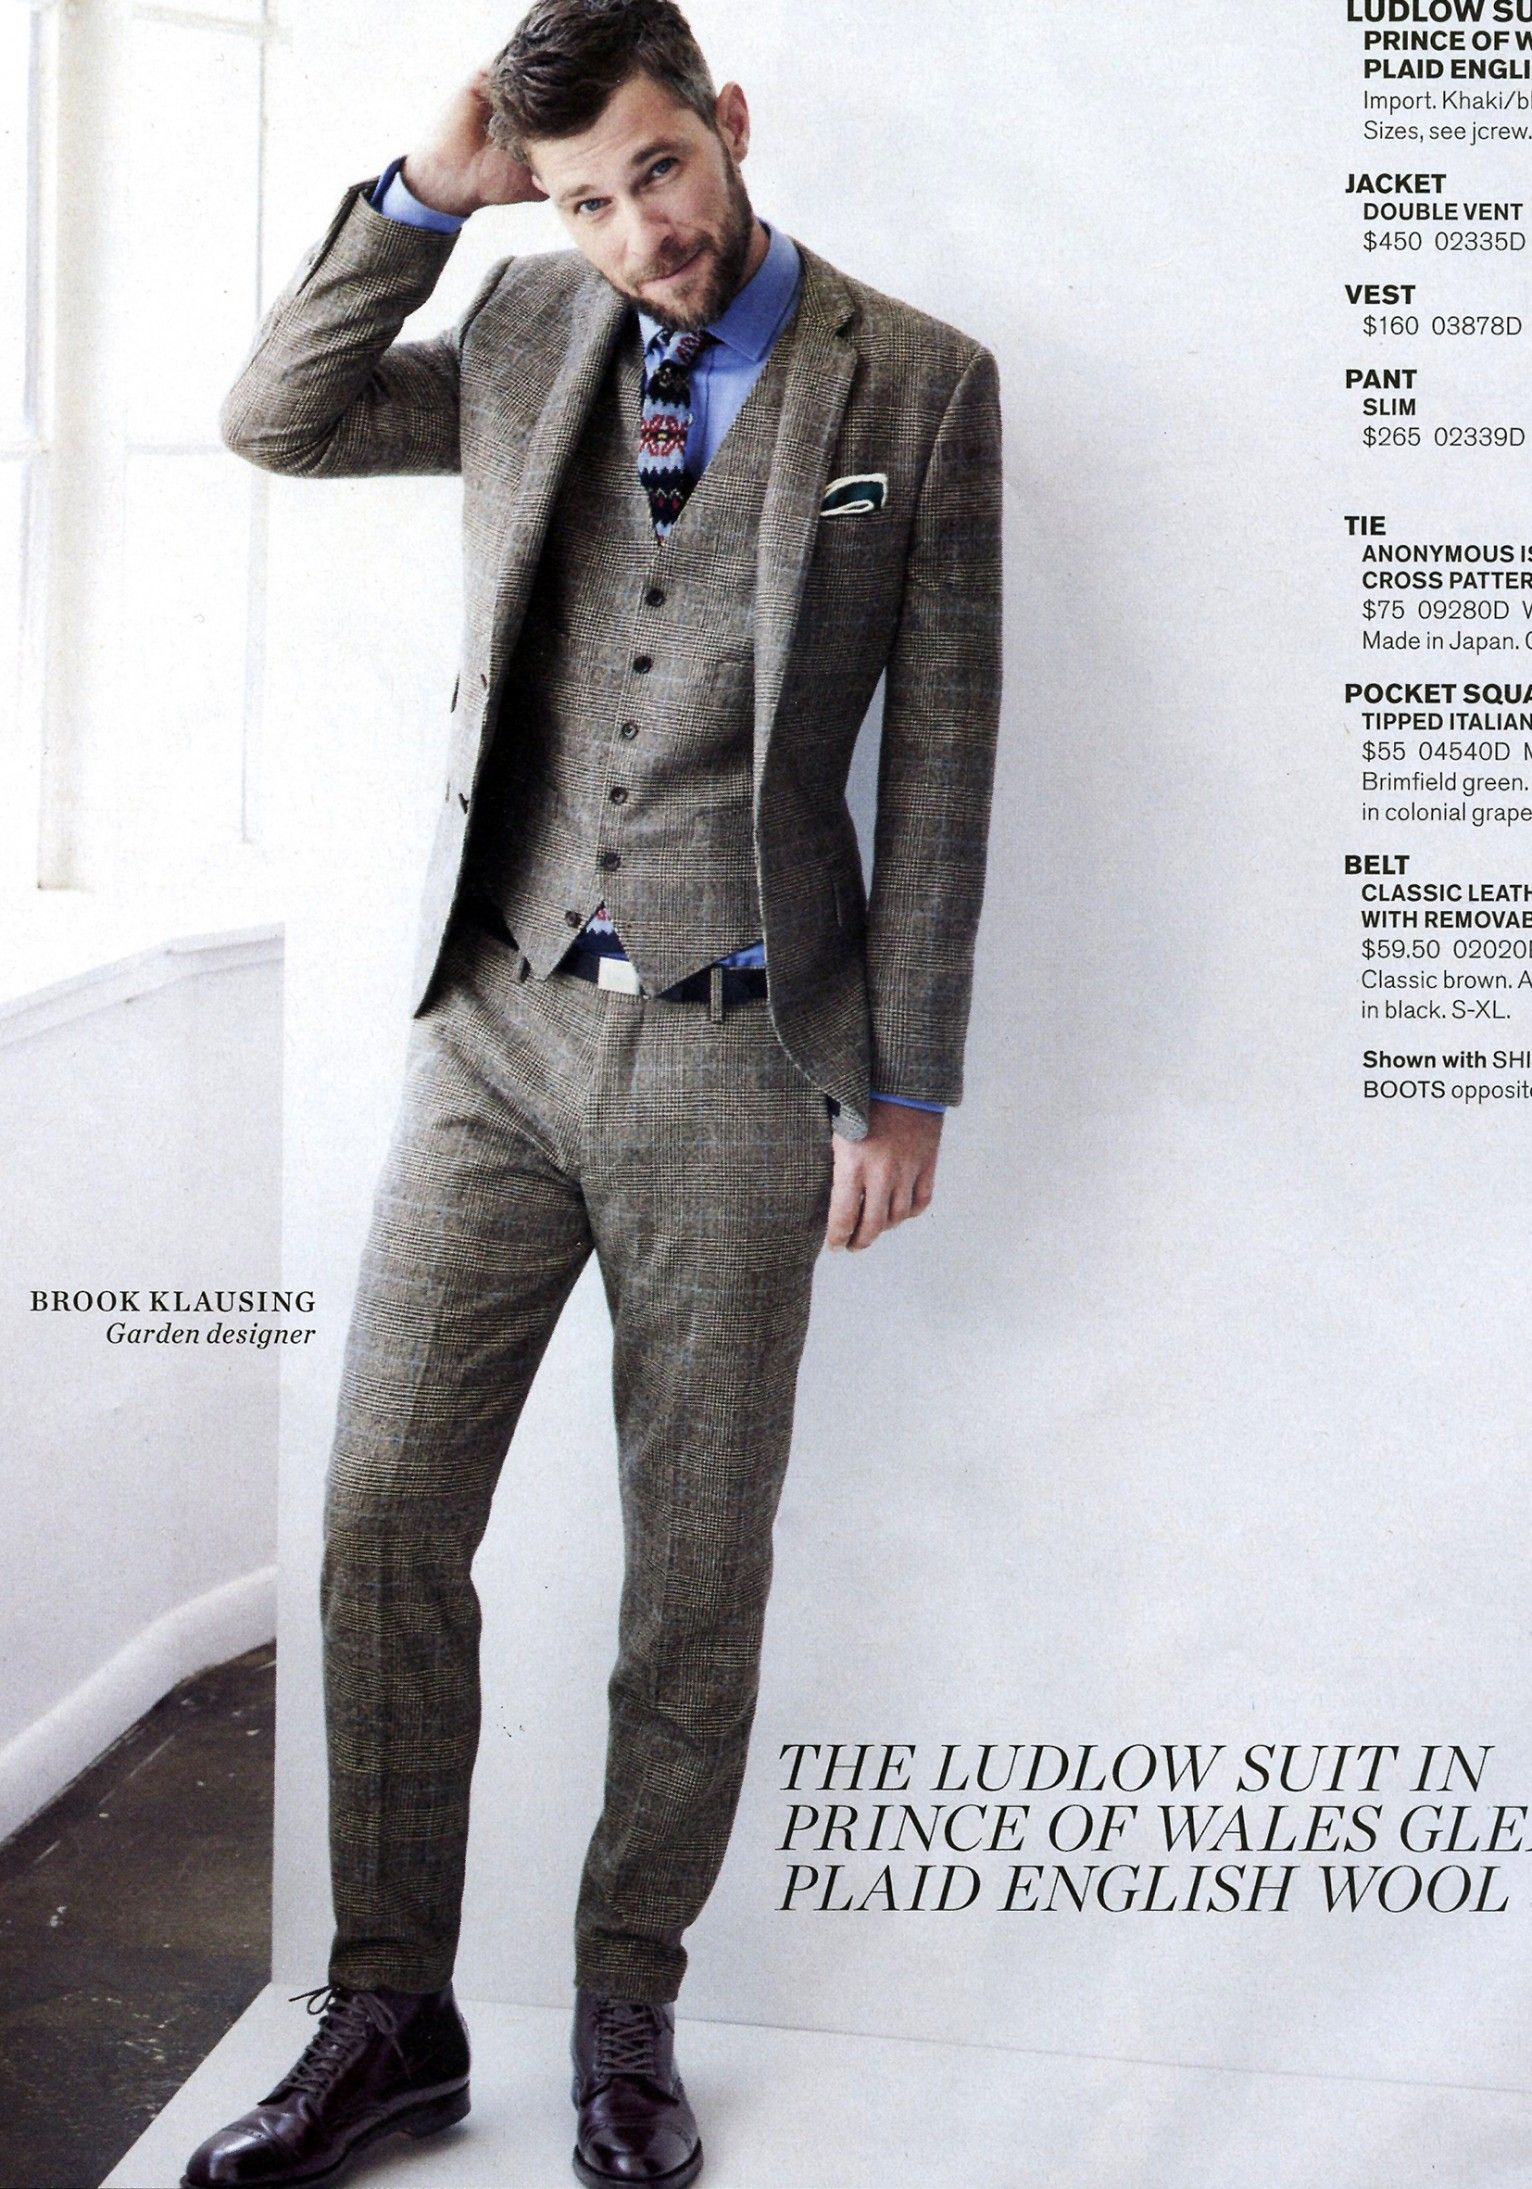 Brook Klausing I Love His Complete Look The Three Piece Suit